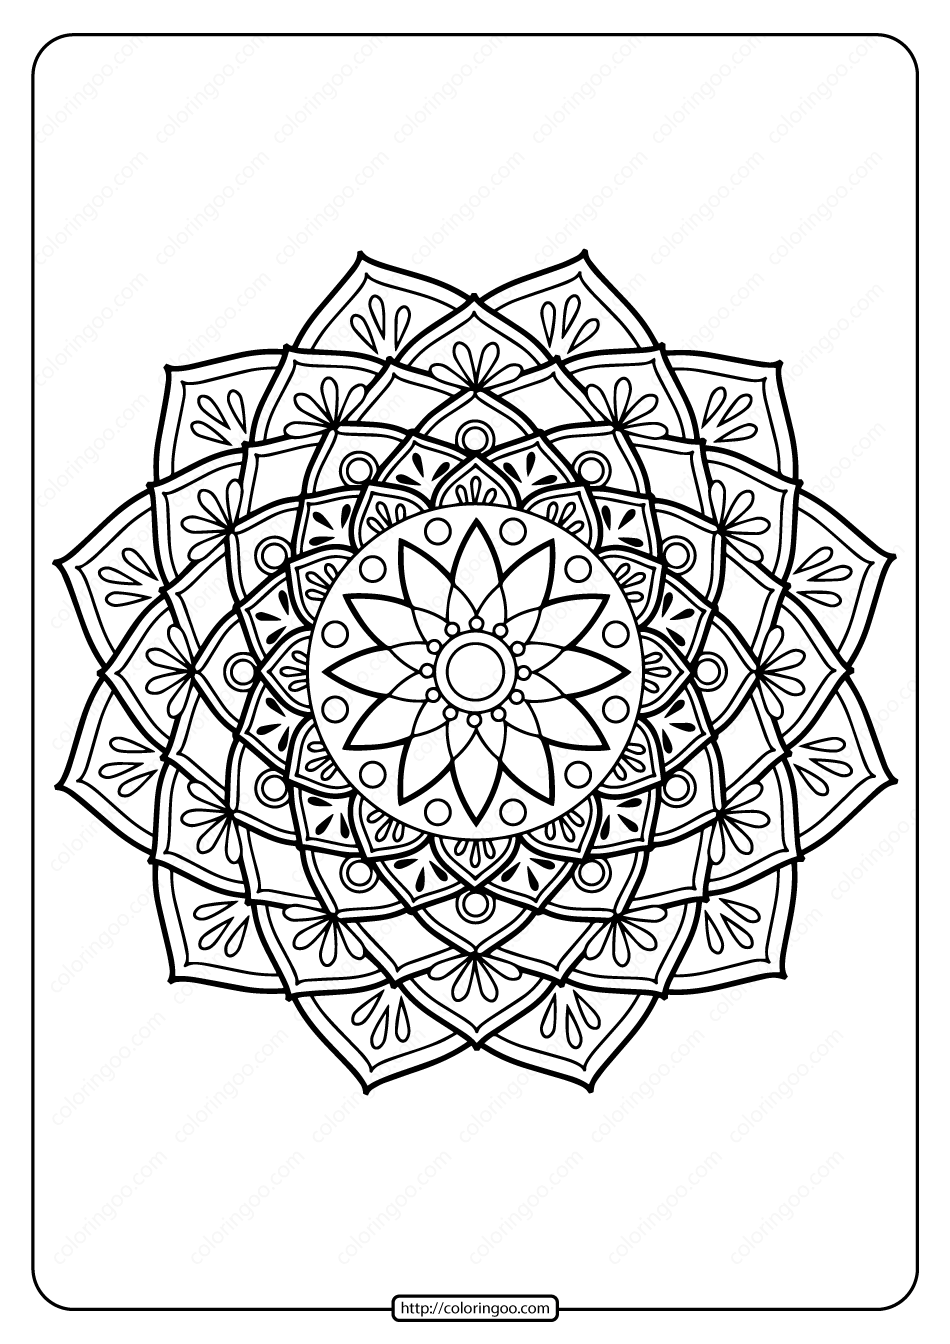 Printable PDF Coloring Book Pages for Adults 025